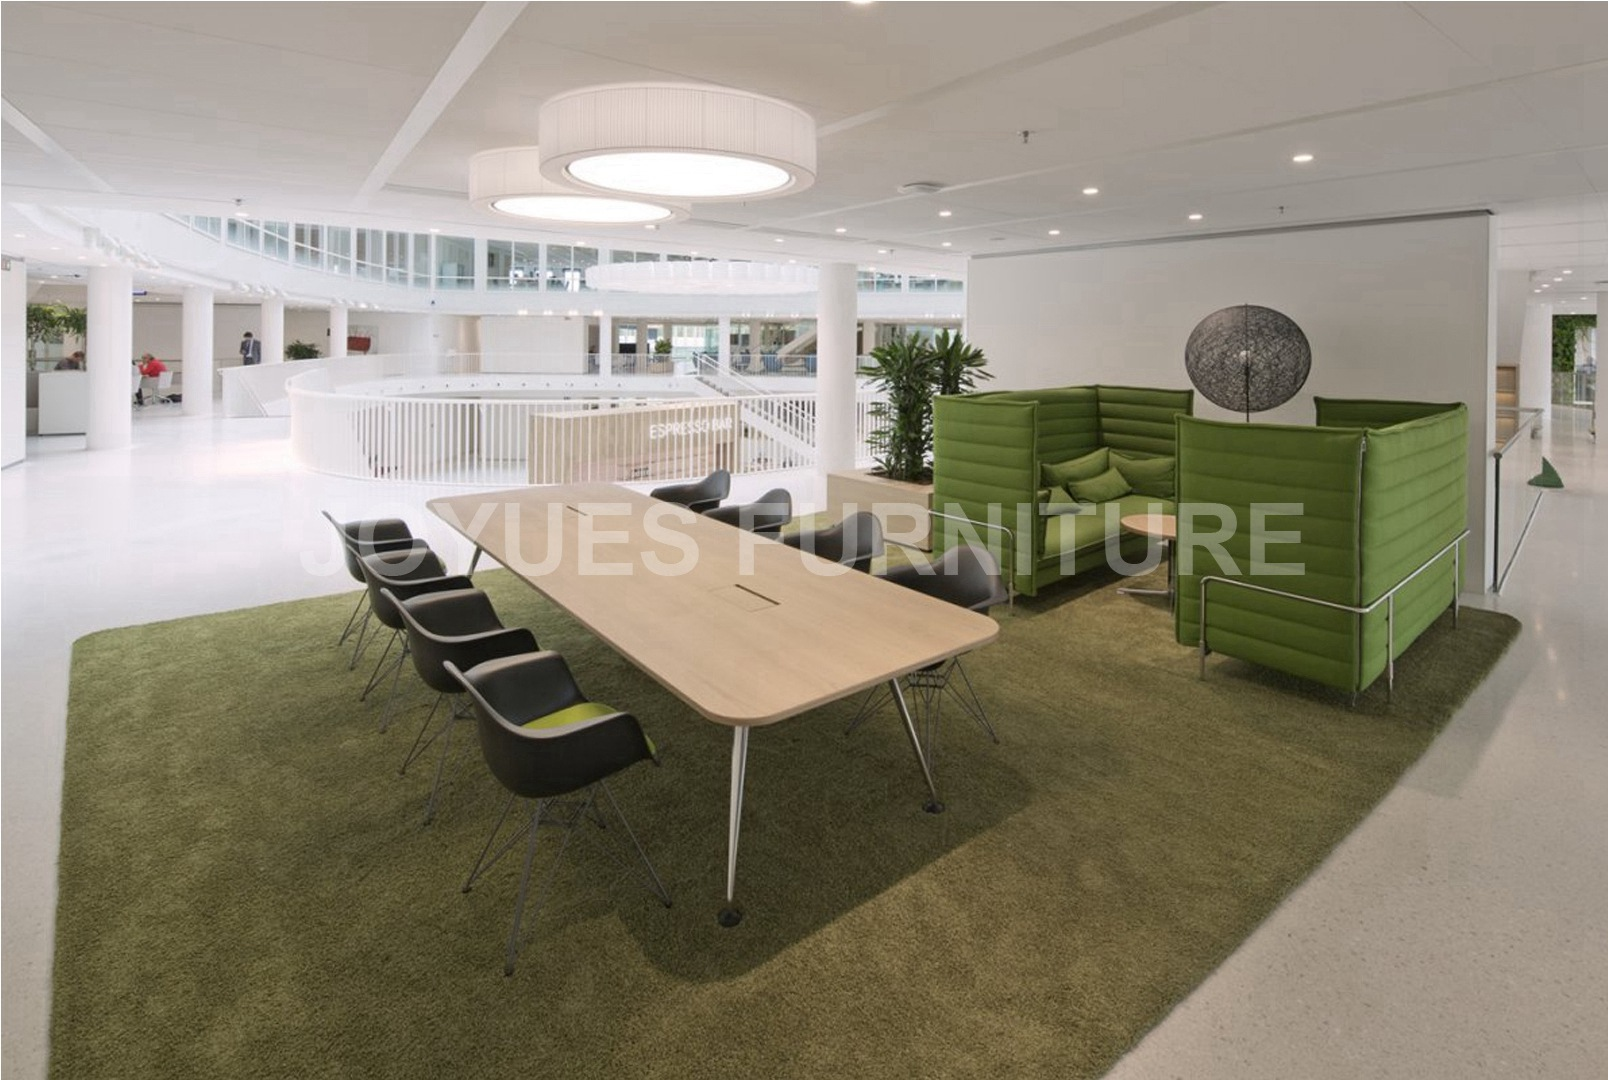 ADOBE SYSTEMS INCORPORATED - Office Furniture - Restaurant